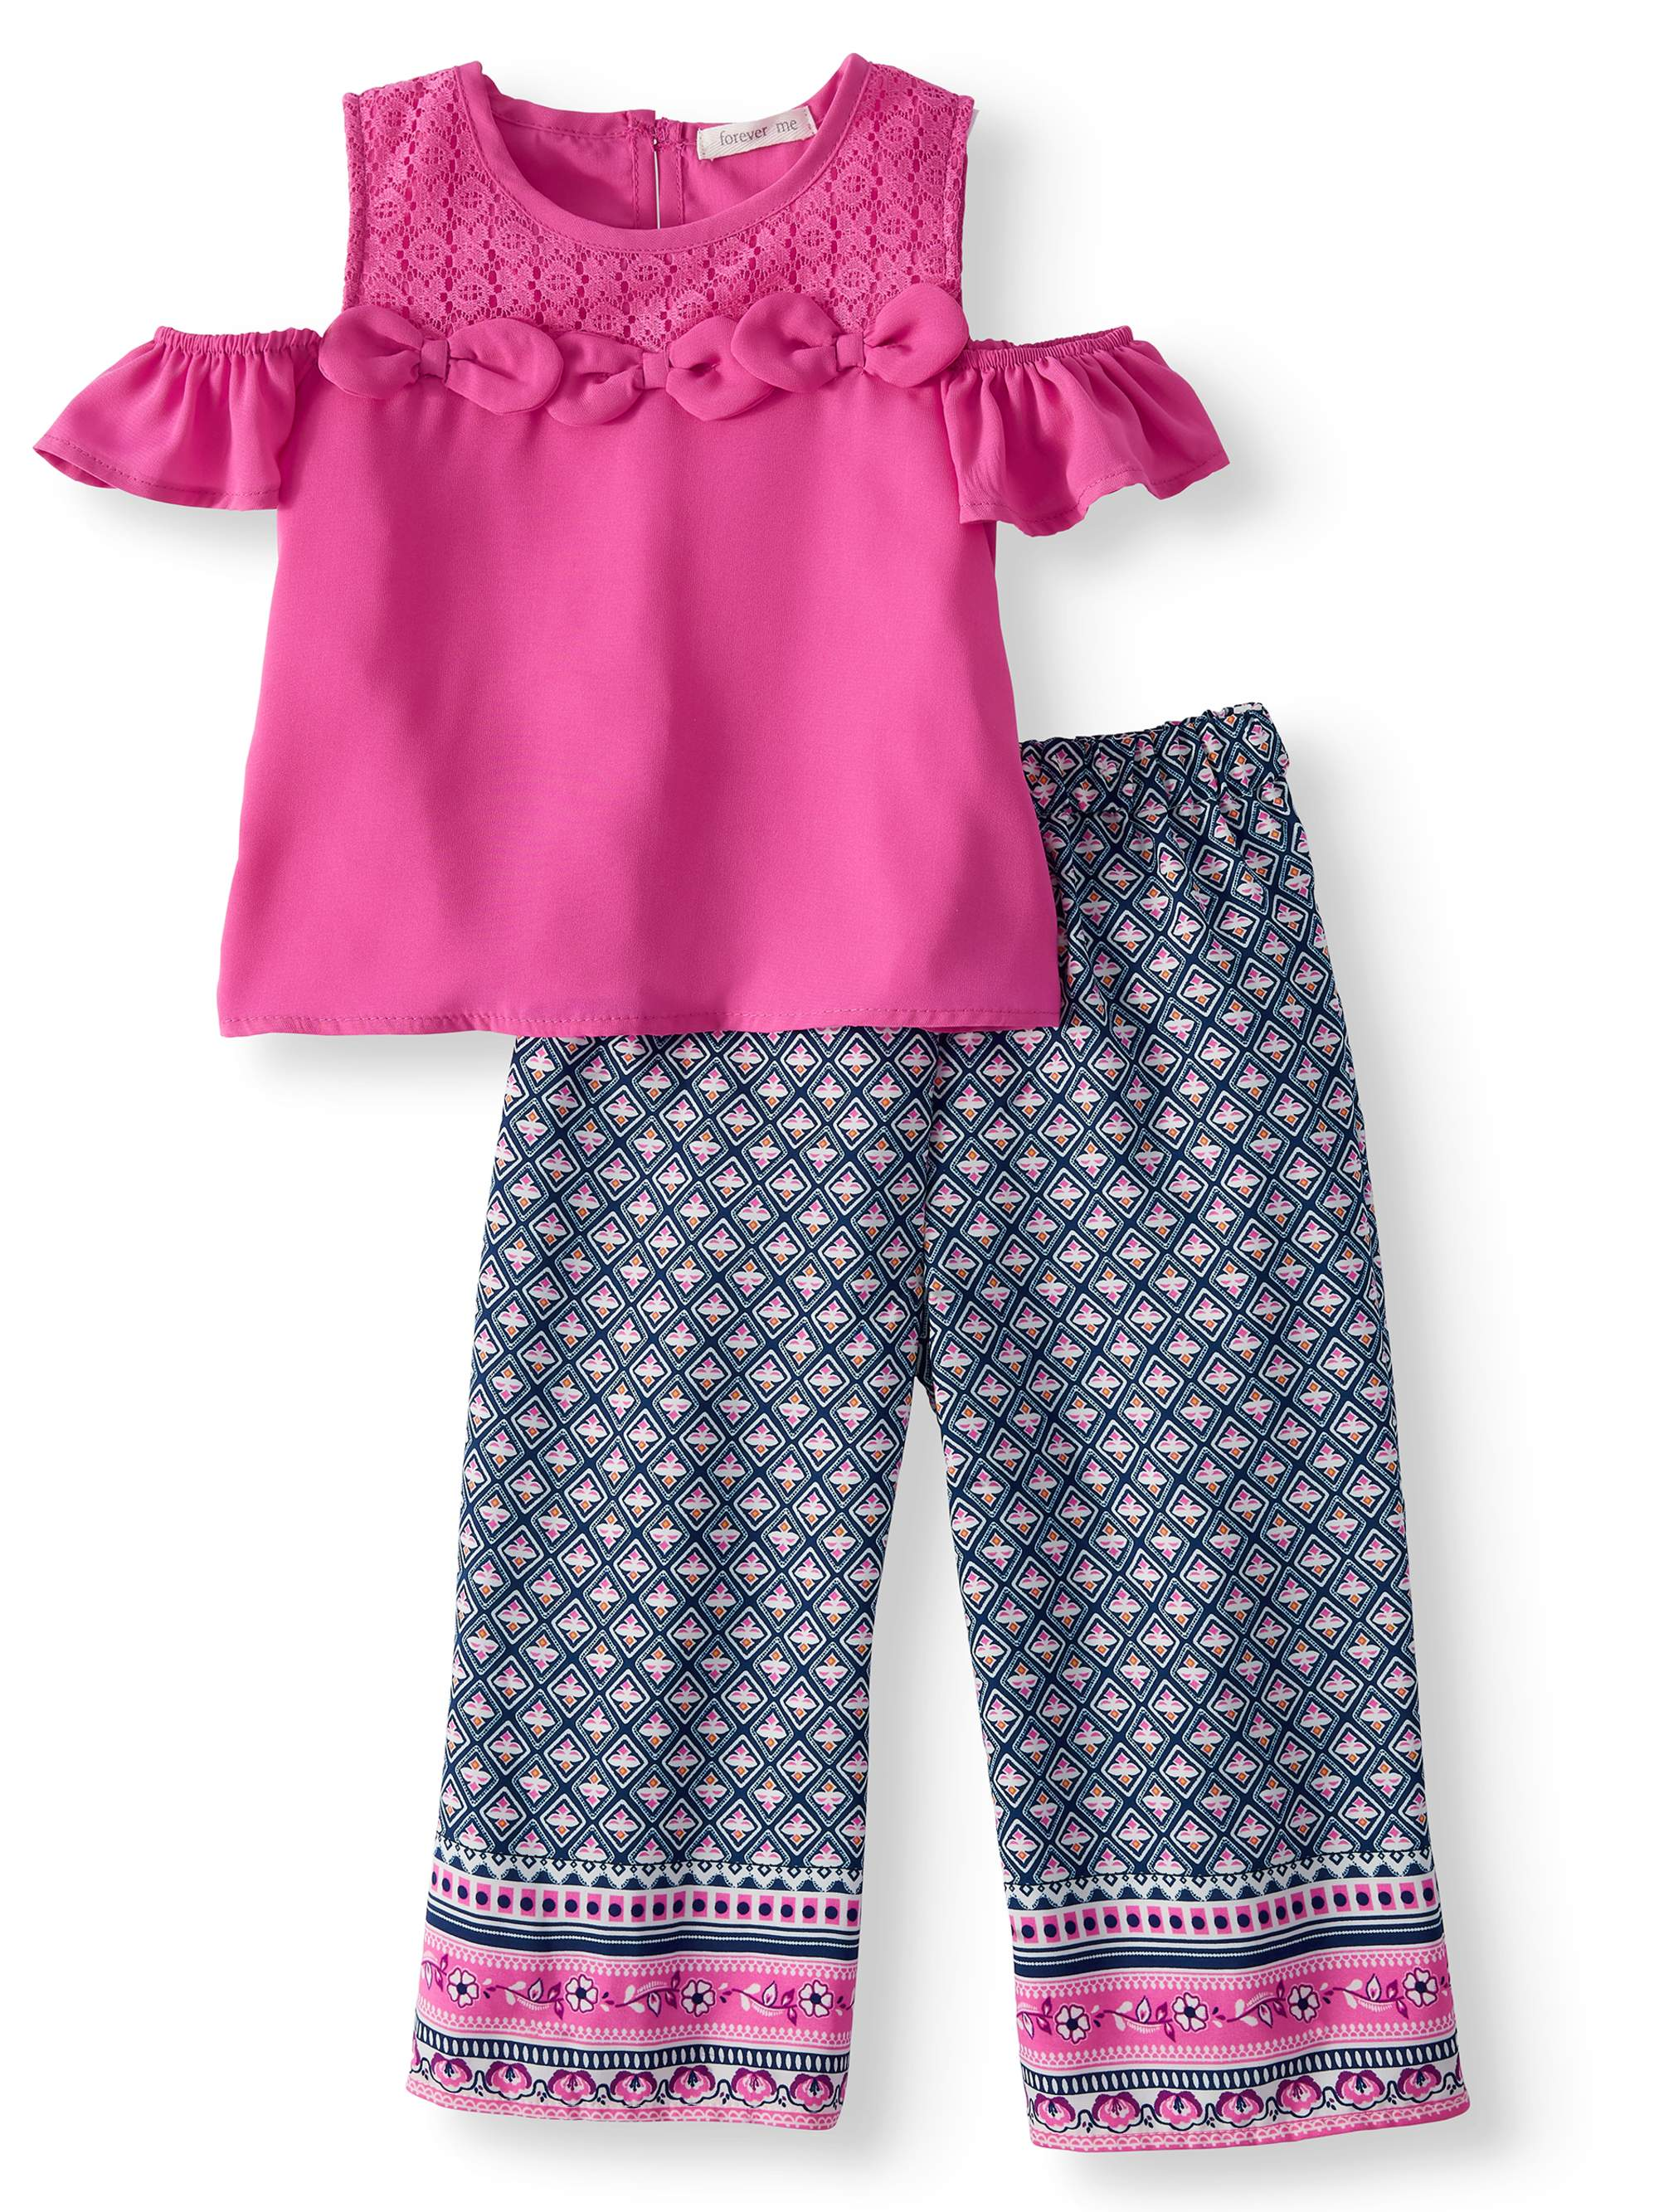 Cold Shoulder Top and Border Print Gaucho, 2-Piece Outfit Set (Little Girls)